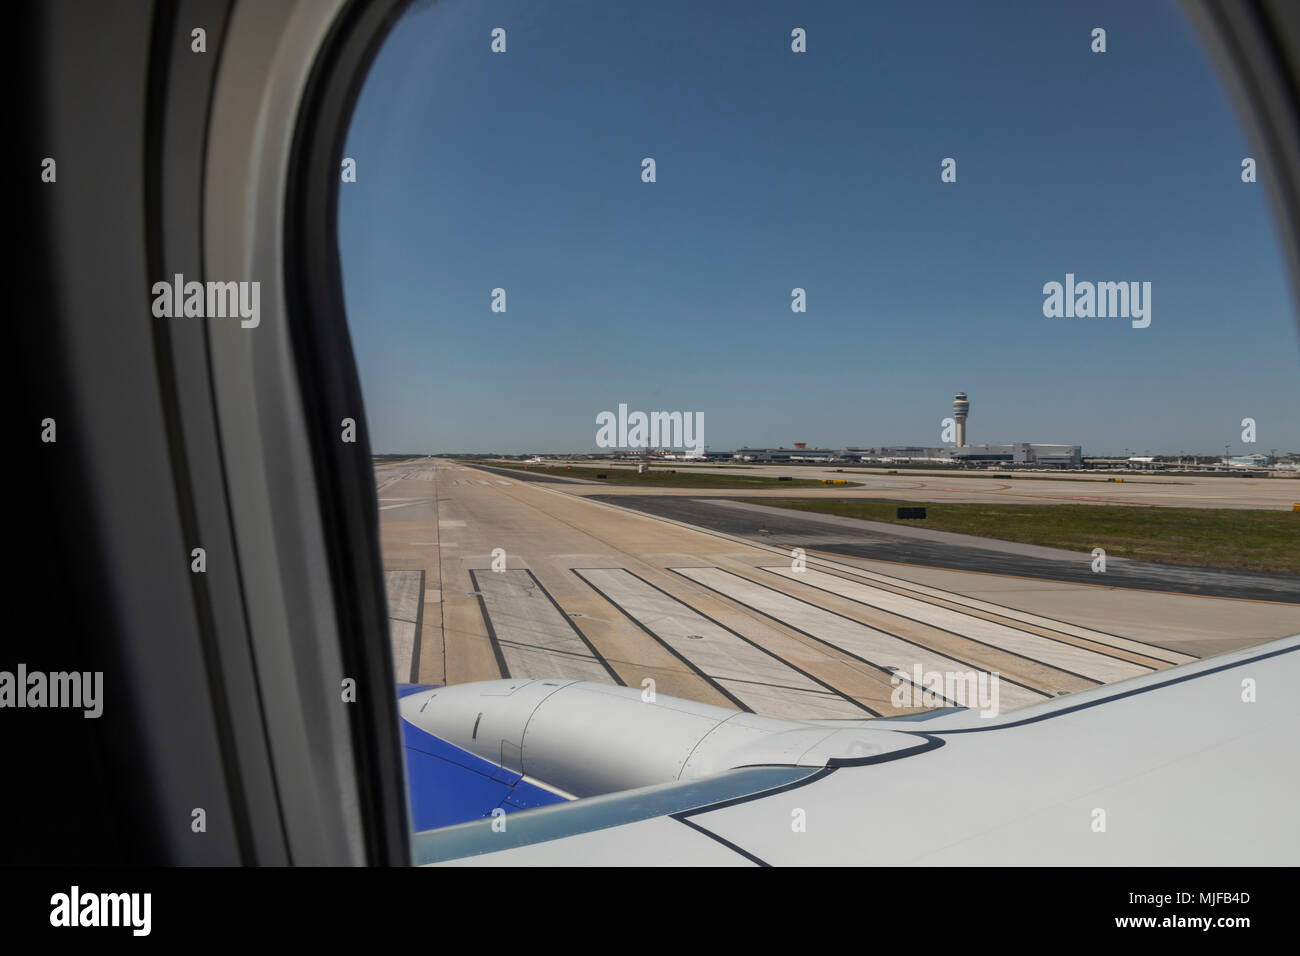 Atlanta, Georgia - The view from a Southwest Airlines jet about to take off from the Atlanta airport. - Stock Image